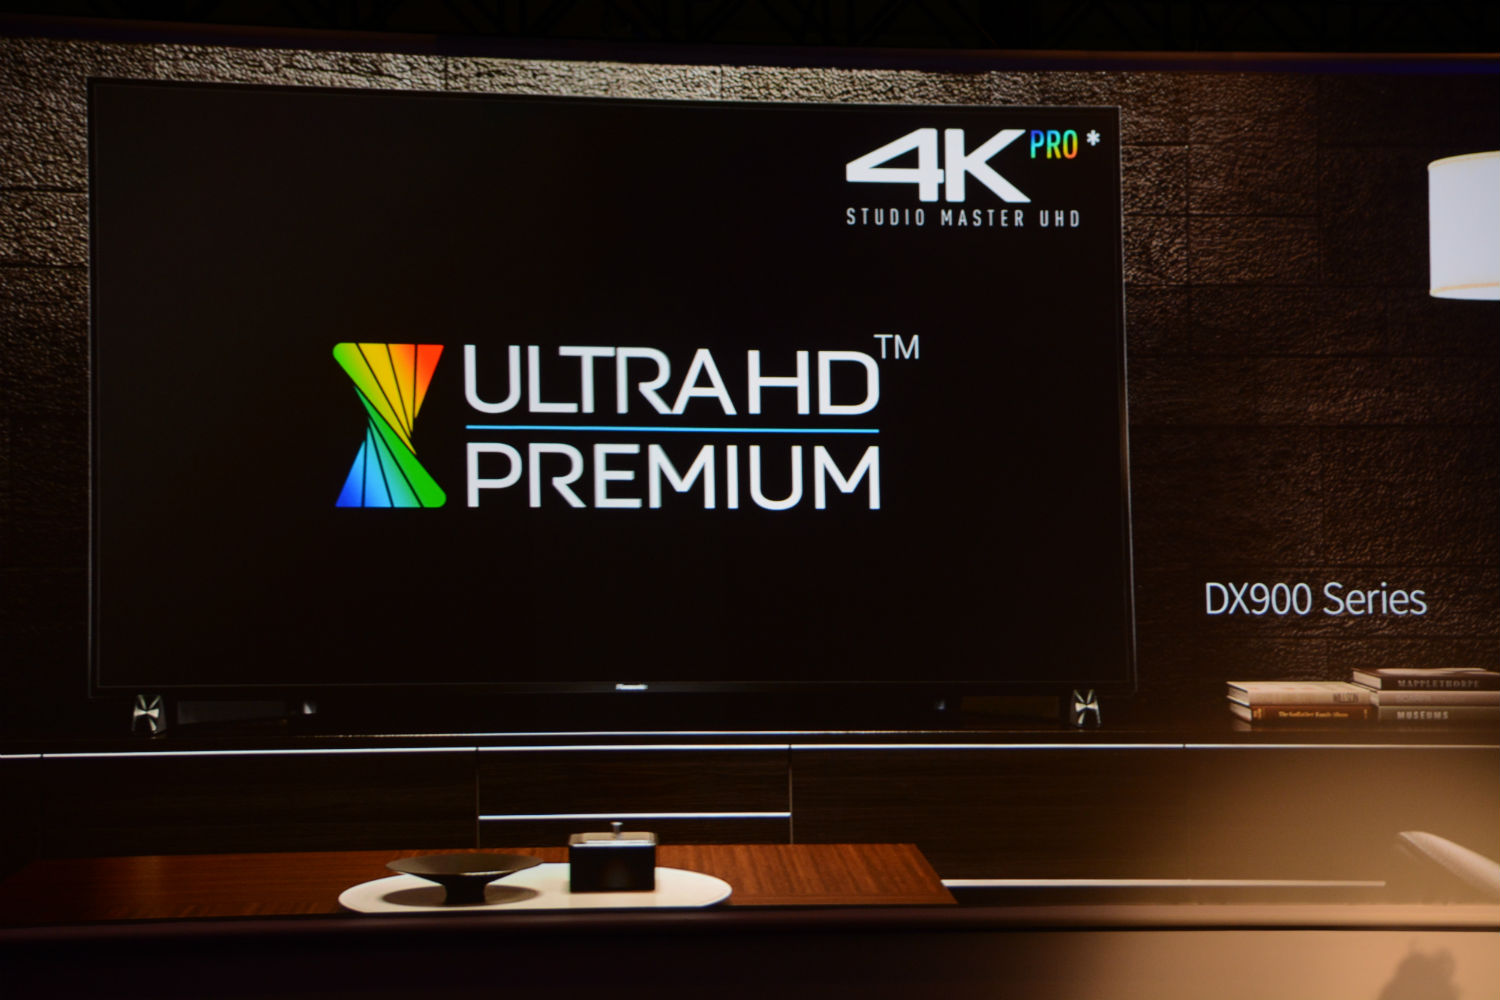 panasonic intros dx900 led tv series promises ultra hd oled and ultra hd blu ray in 2016. Black Bedroom Furniture Sets. Home Design Ideas